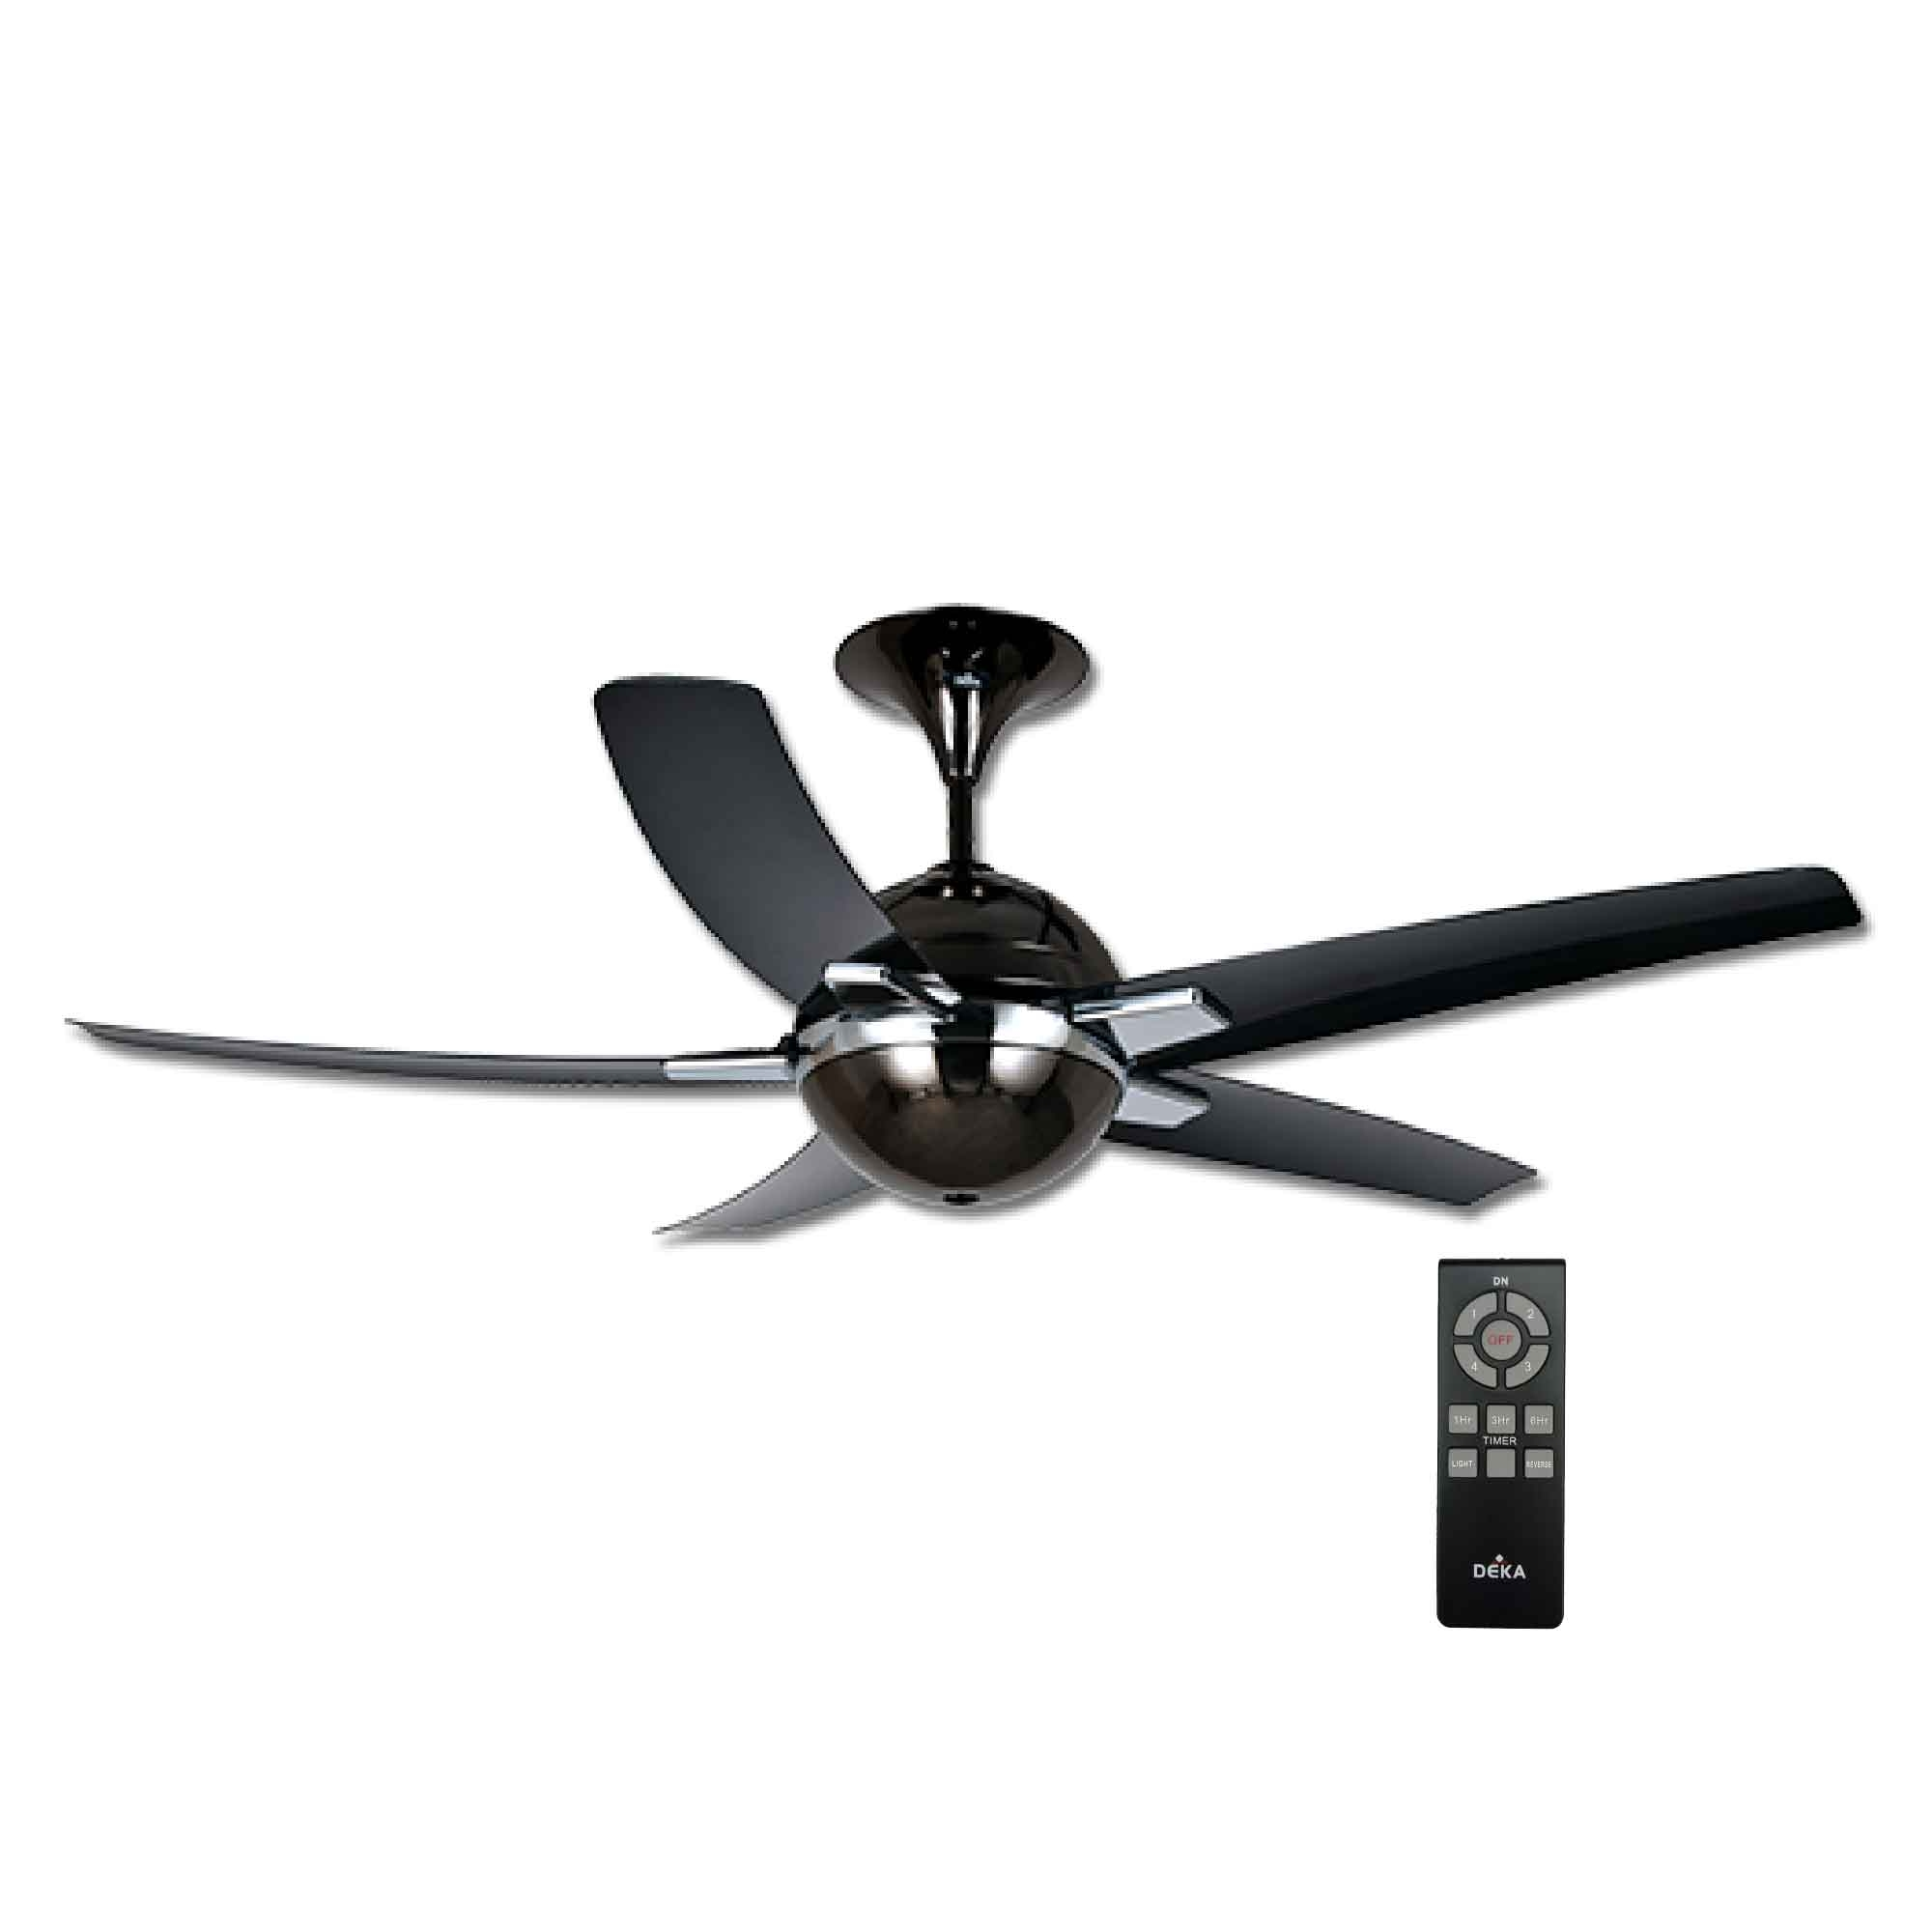 avvo quicksilver led modern fans carlo product fan with monte zm ceiling wide outdoor indoor